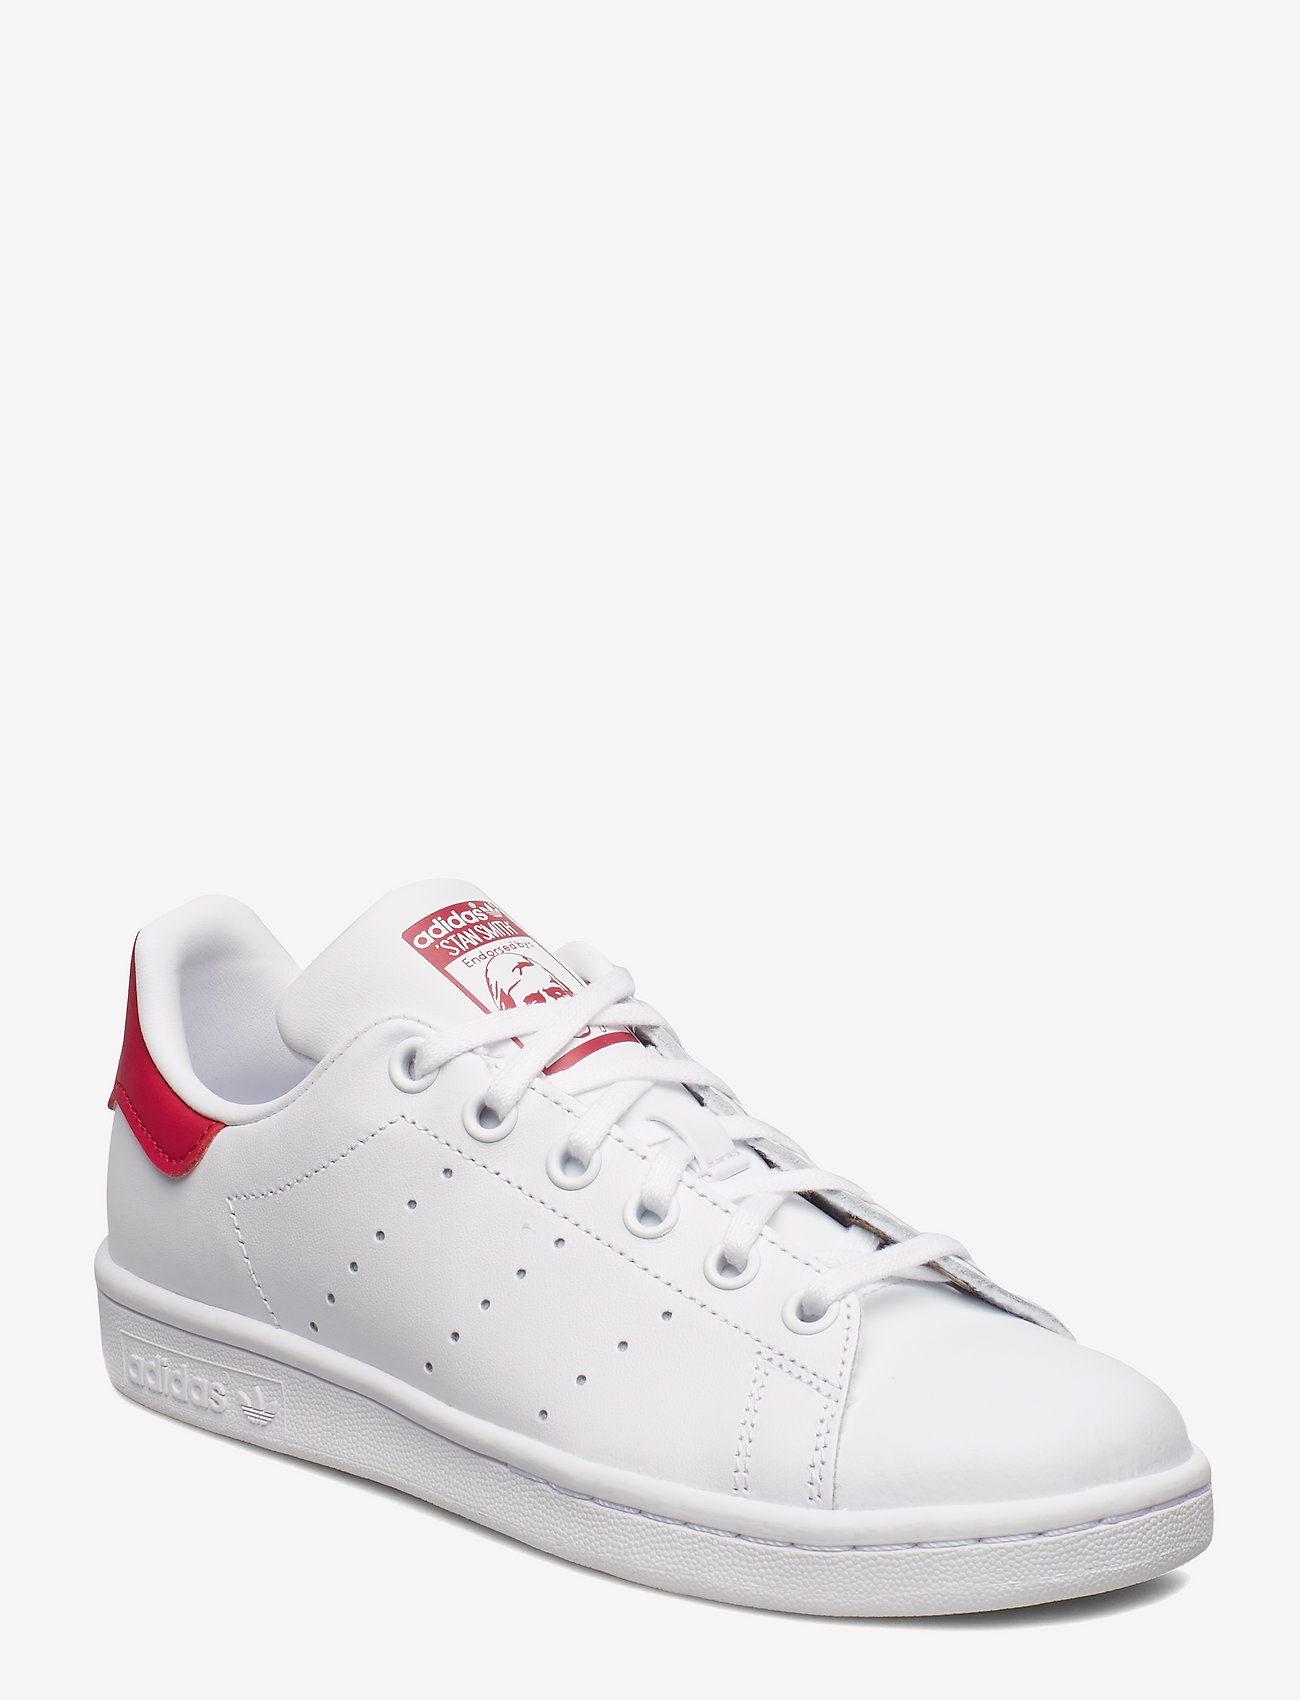 adidas Originals - STAN SMITH J - low tops - ftwwht/ftwwht/bopink - 0